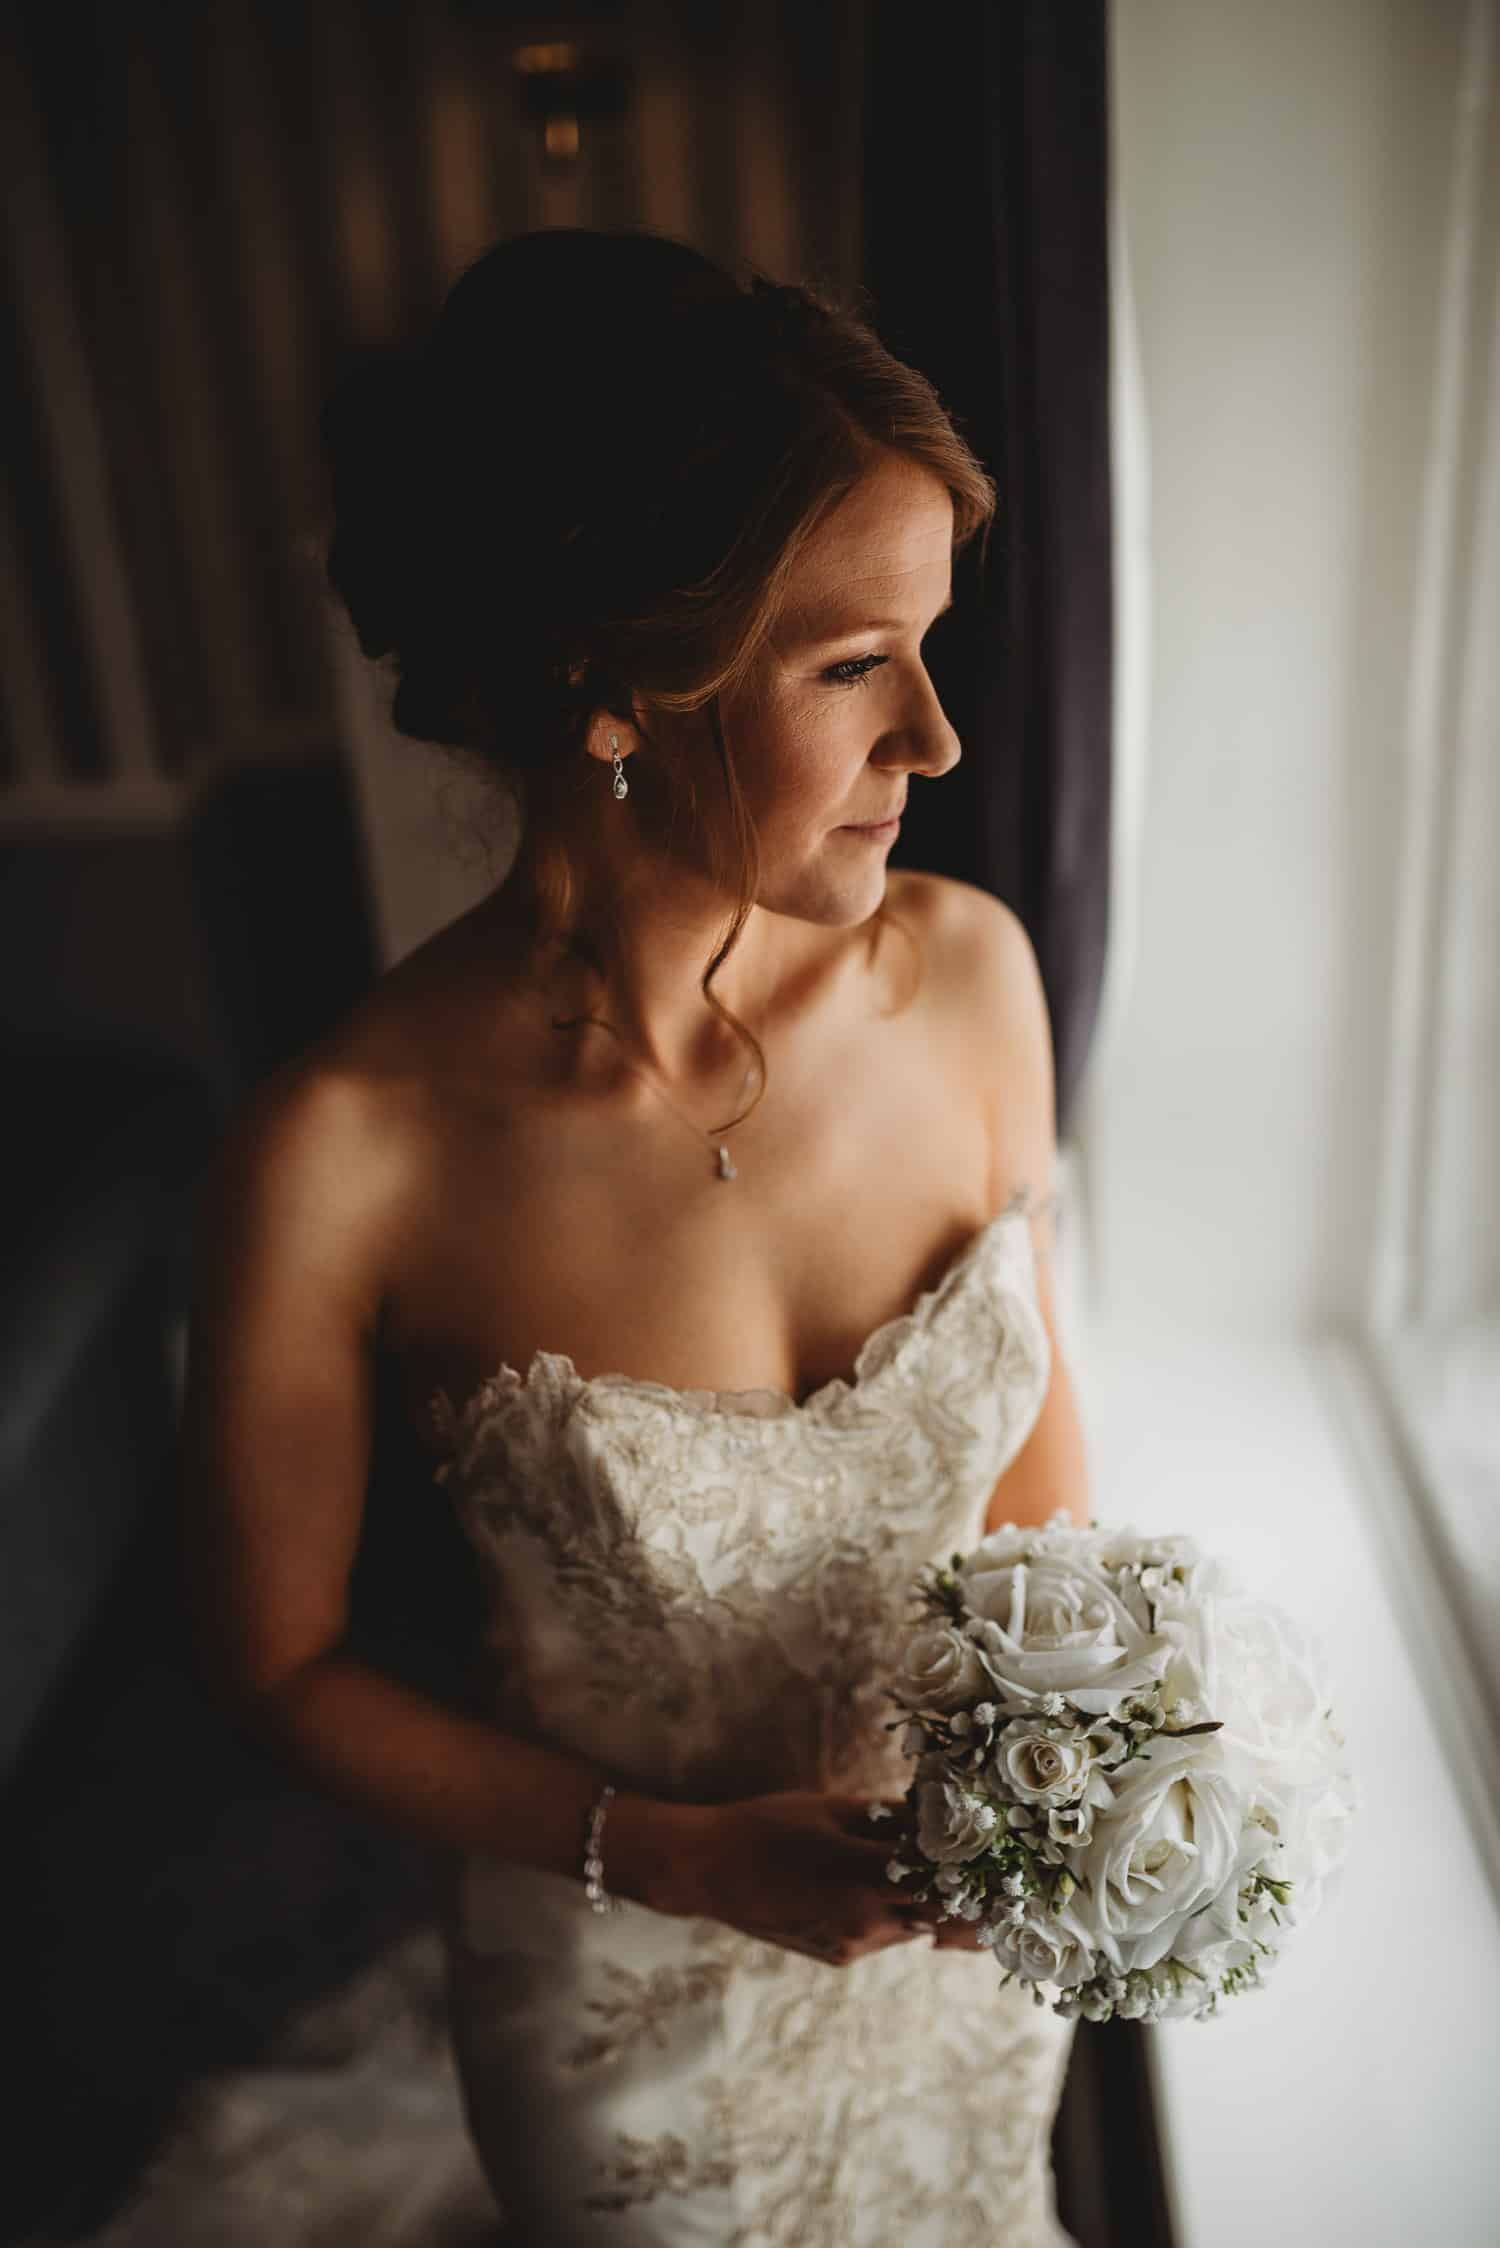 portrait of the bride holding her bouquet and looking out of the window